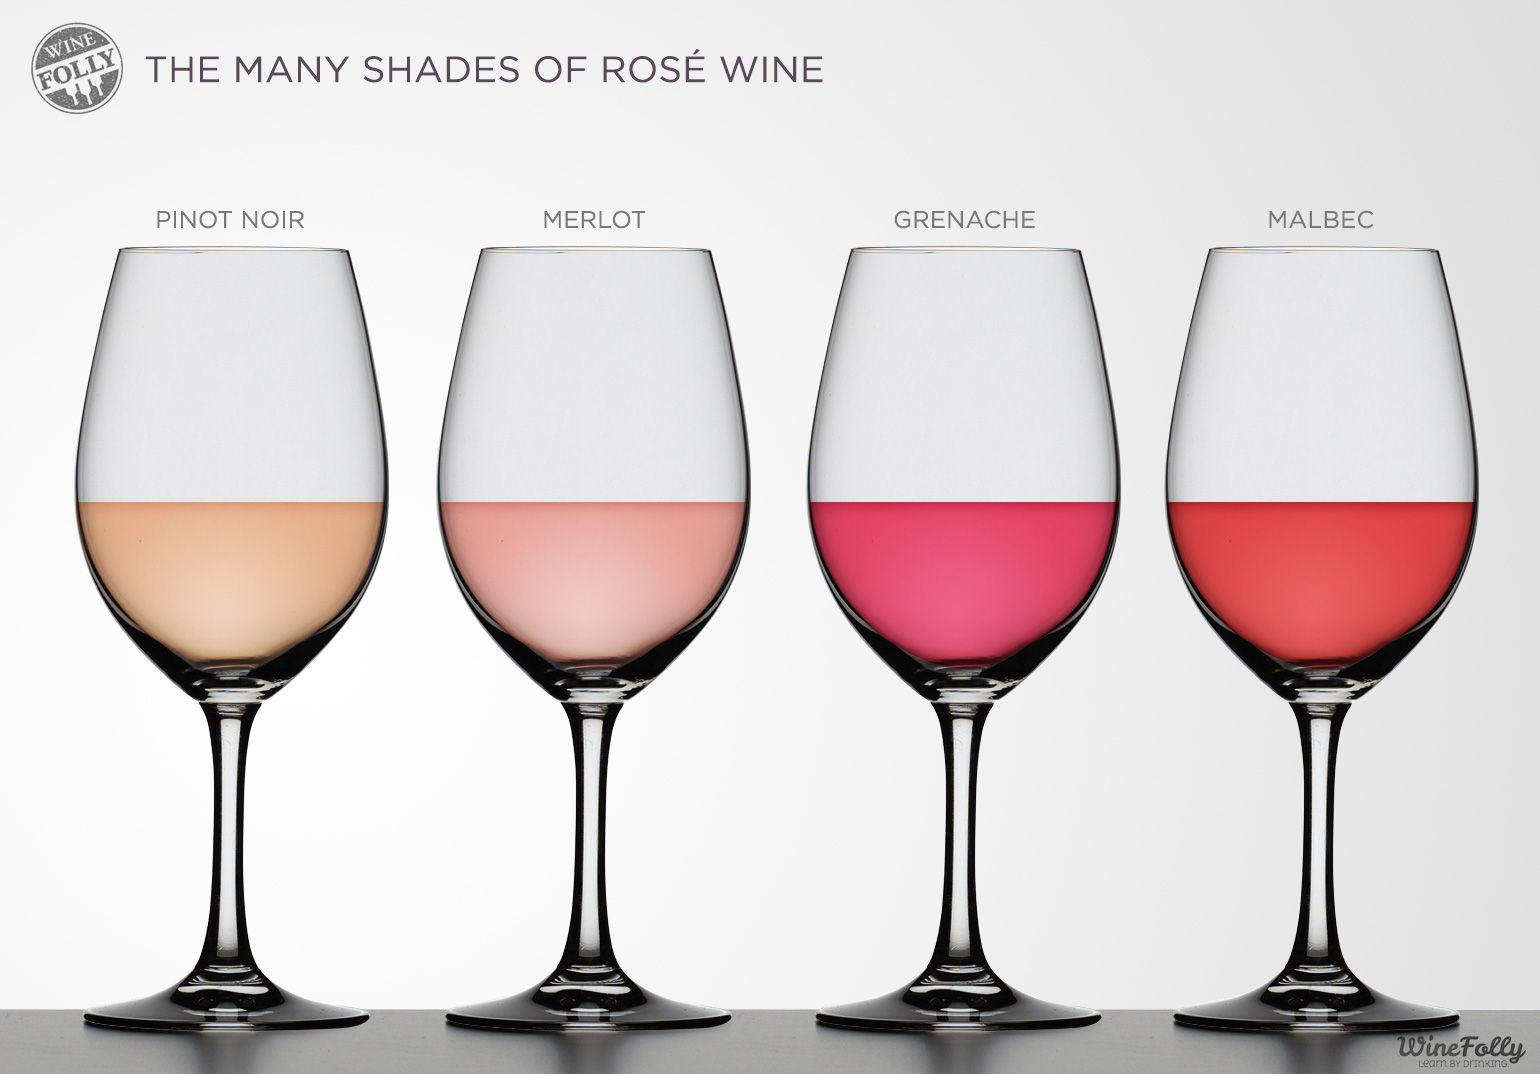 Different Shades Of Rose Wine Vins Et Spiritueux Vin Rose Vin